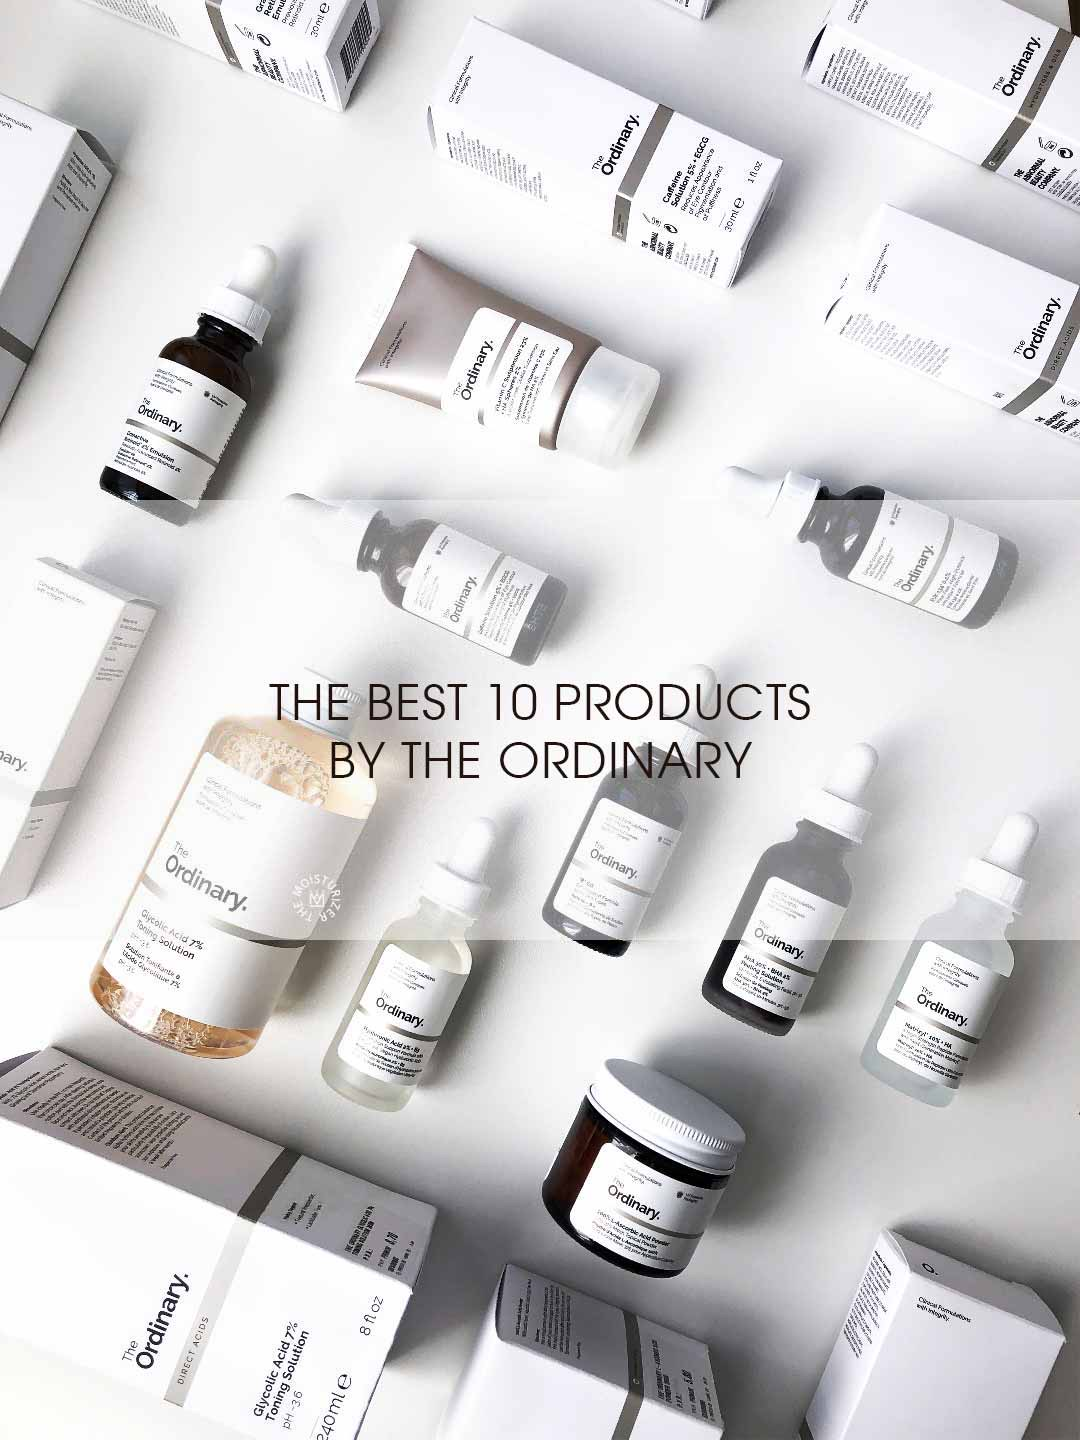 The Moisturizer - COMPARISON: The best 10 products by The Ordinary